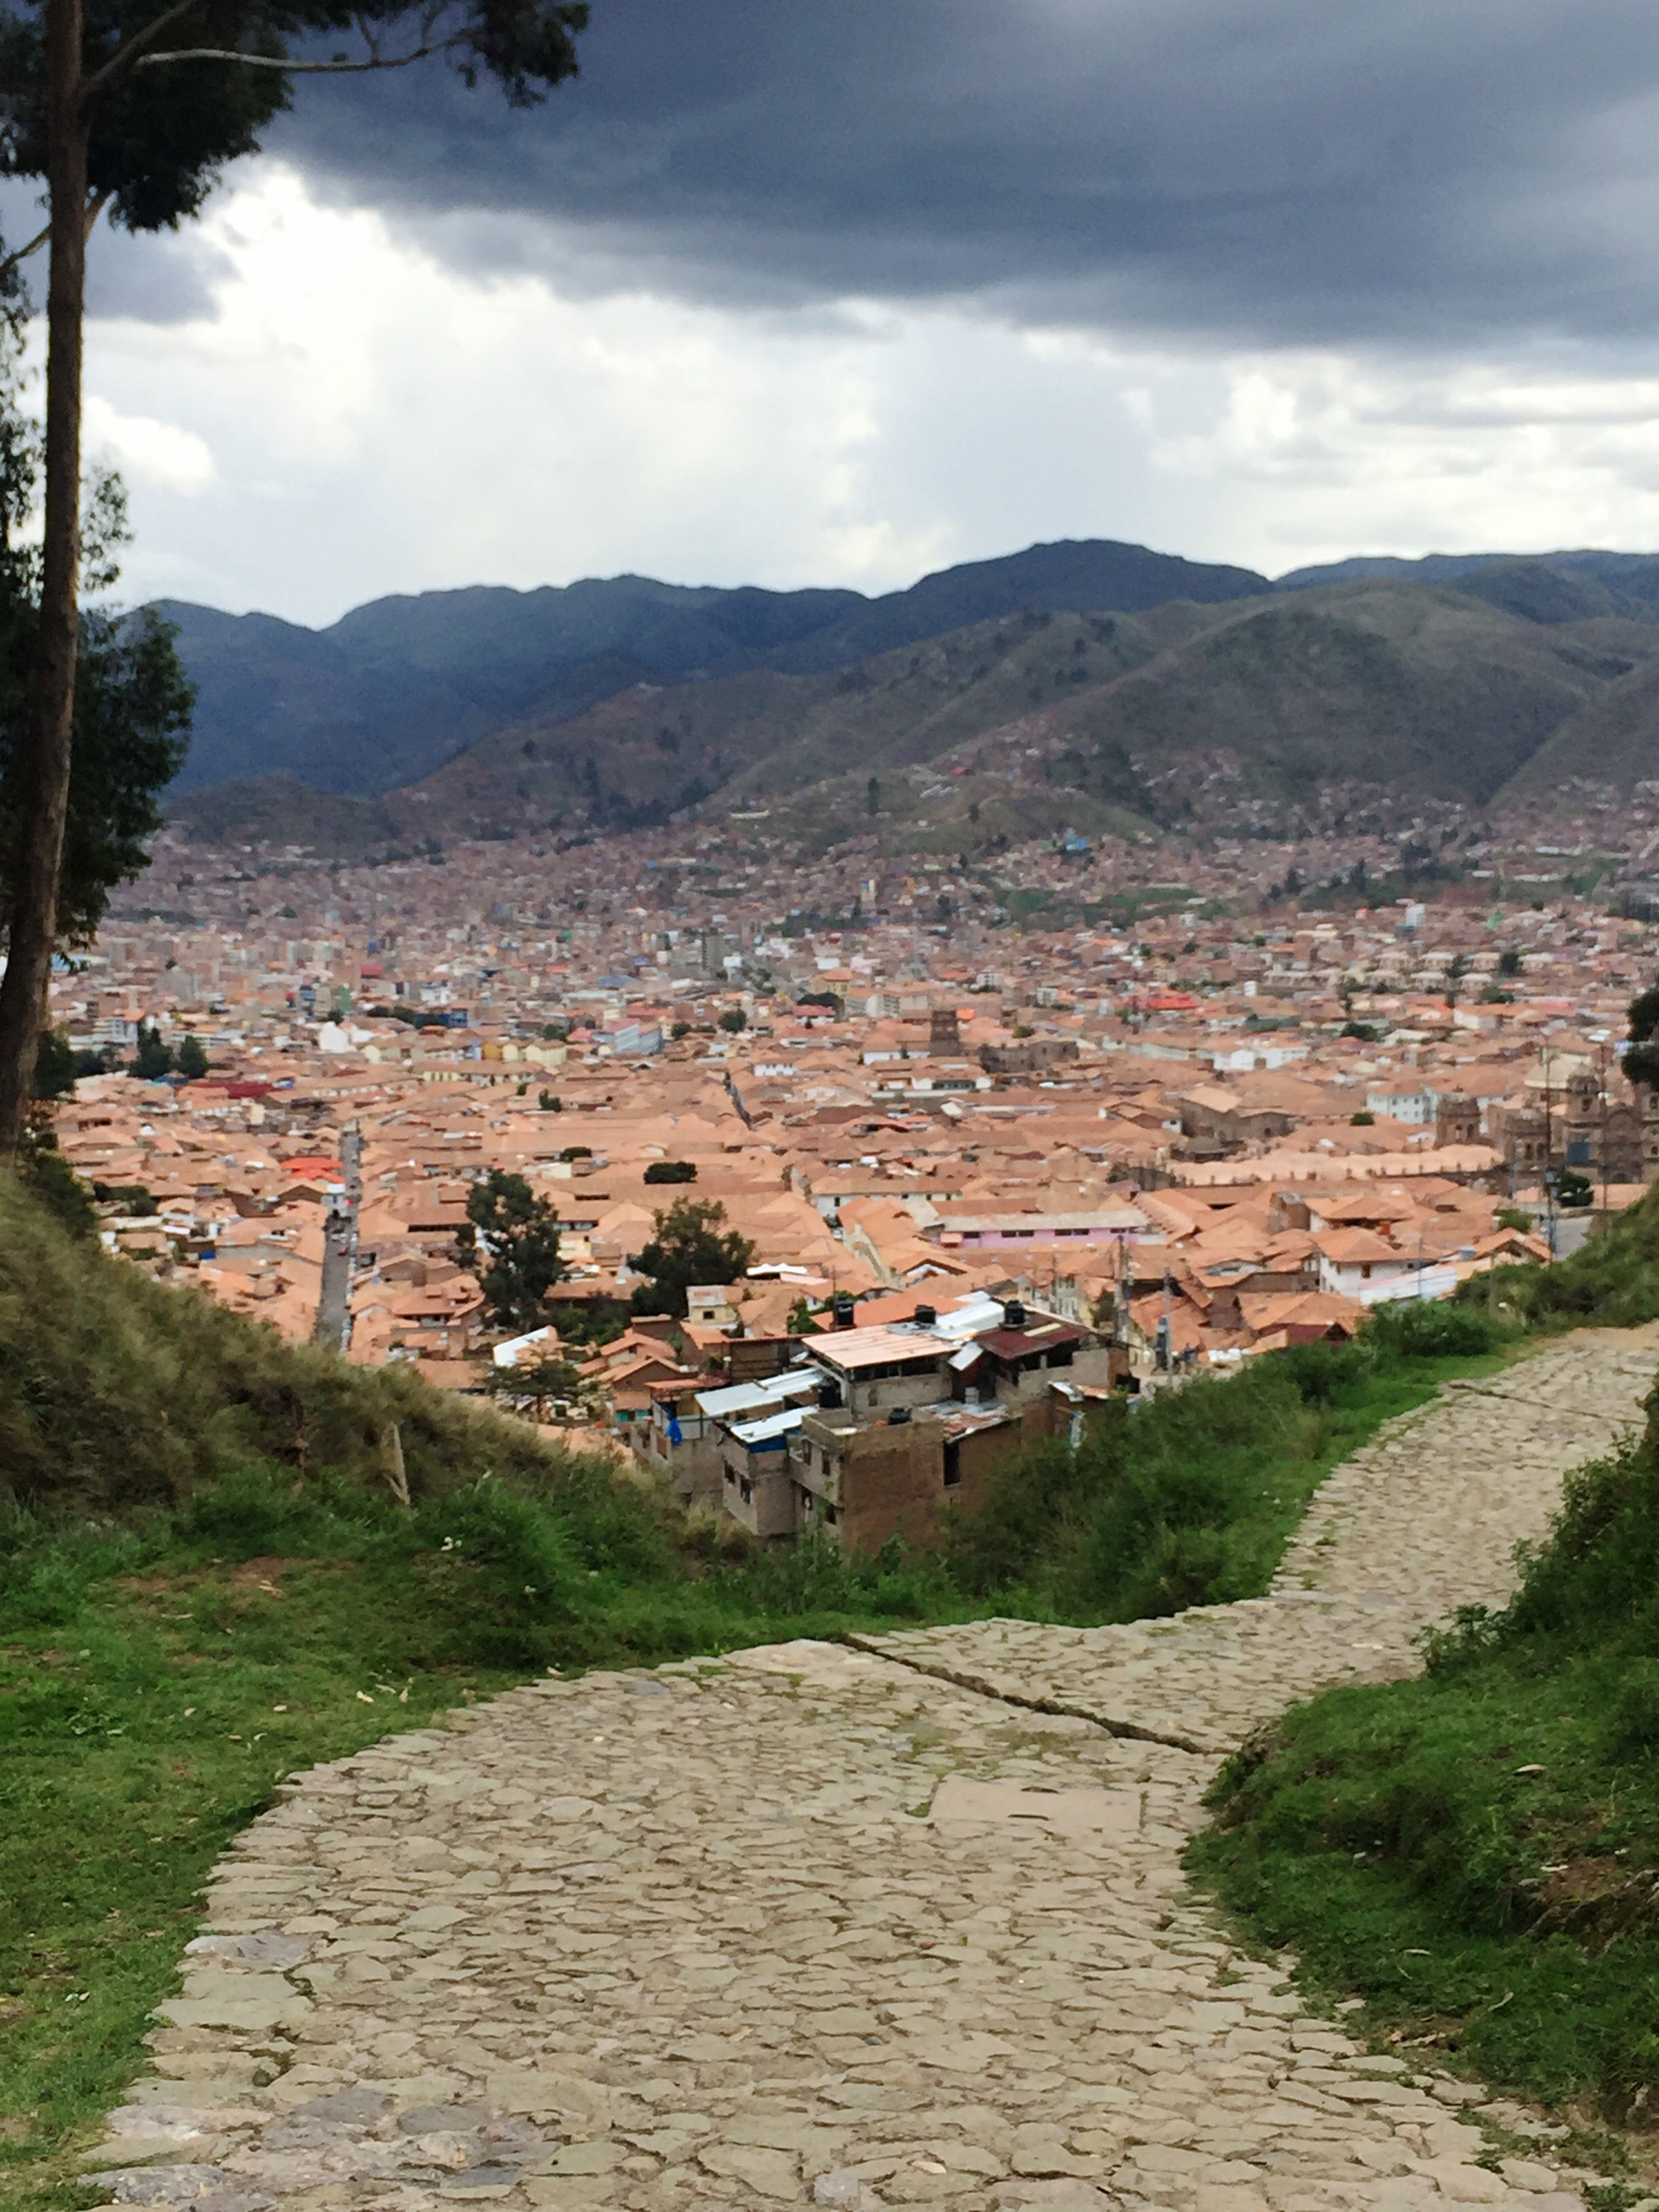 Yes, we had to walk a lot to get to the hotel. Sacsayhuaman Cusco, Peru Mountain Sky Outdoors 2016 Photo